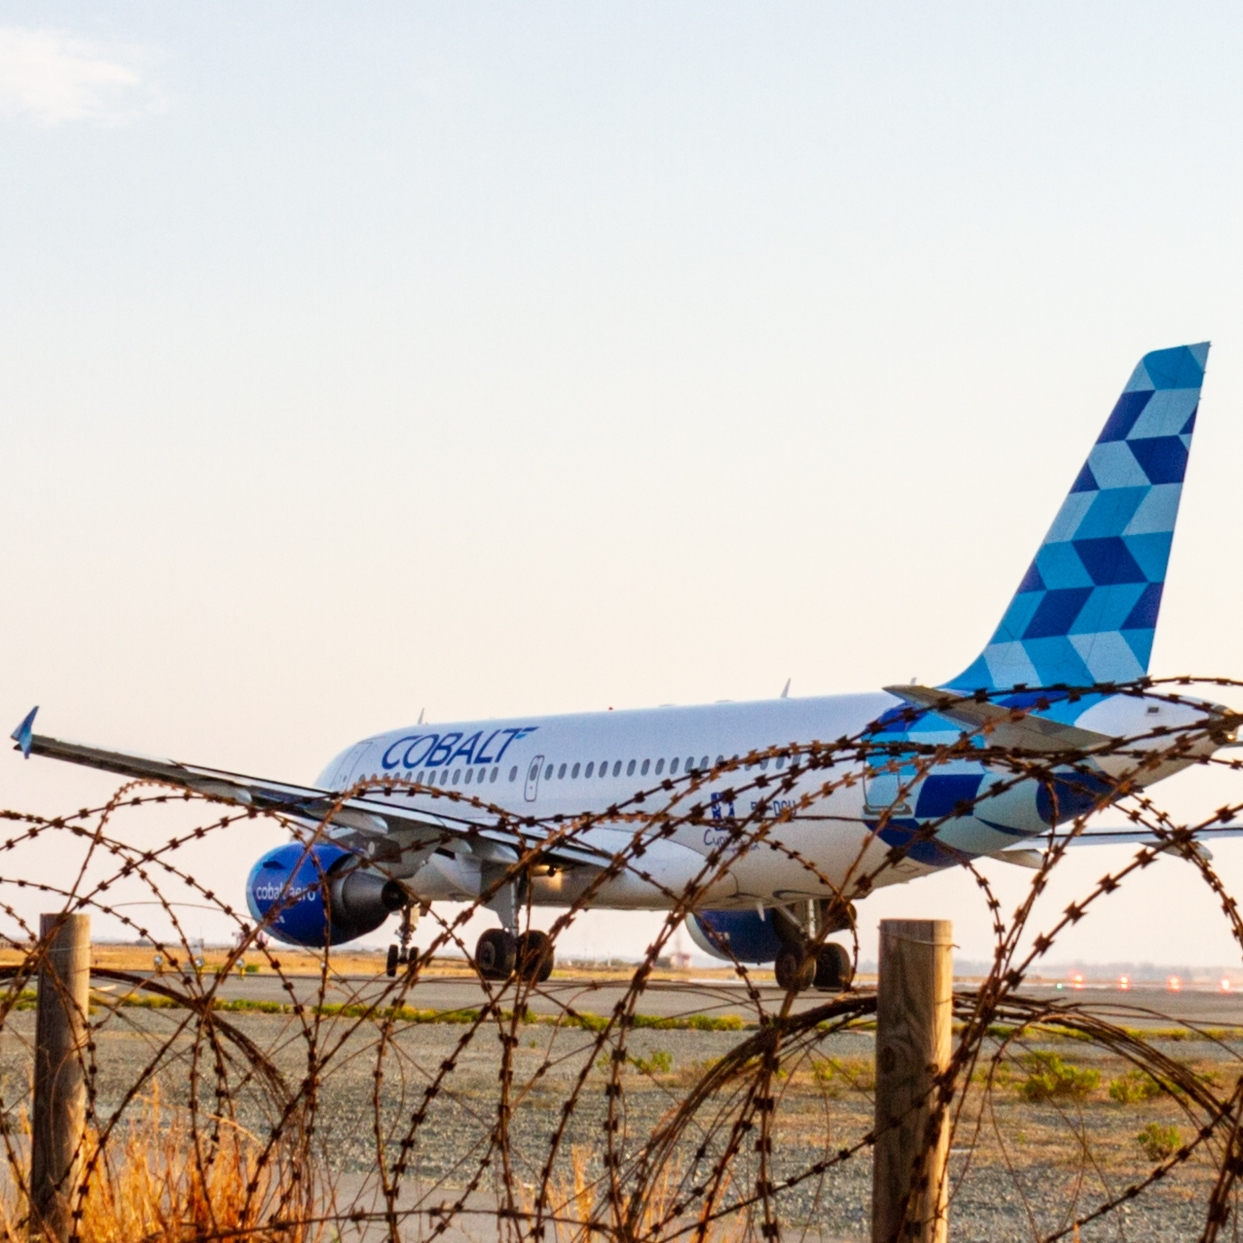 Budget airline Cobalt cancels all flights - what you need to know